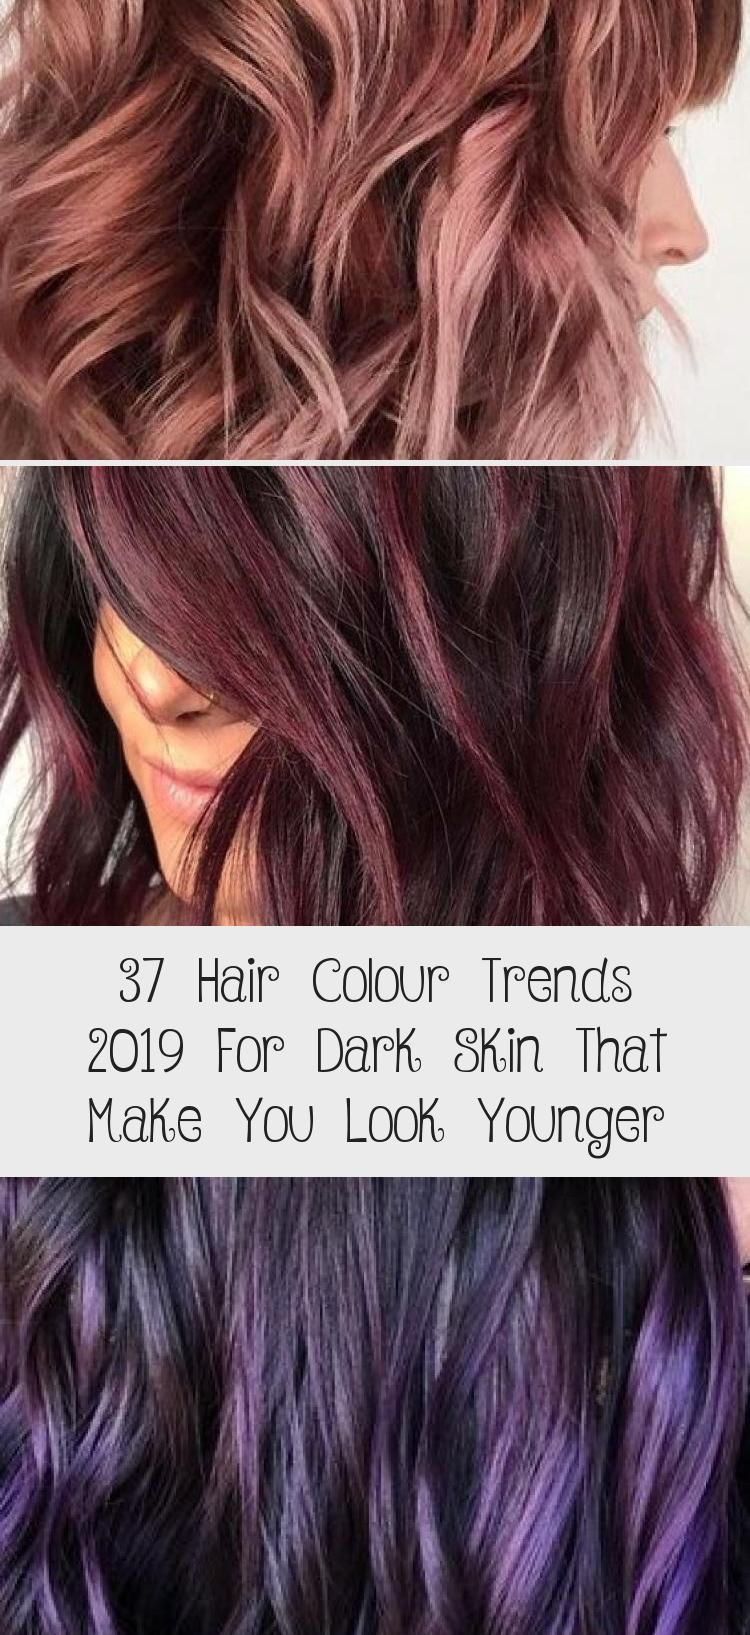 37 Hair Colour Trends 2019 For Dark Skin That Make You Look Younger Hair Care In 2020 Hair Color Trends Hair Color Younger Hair